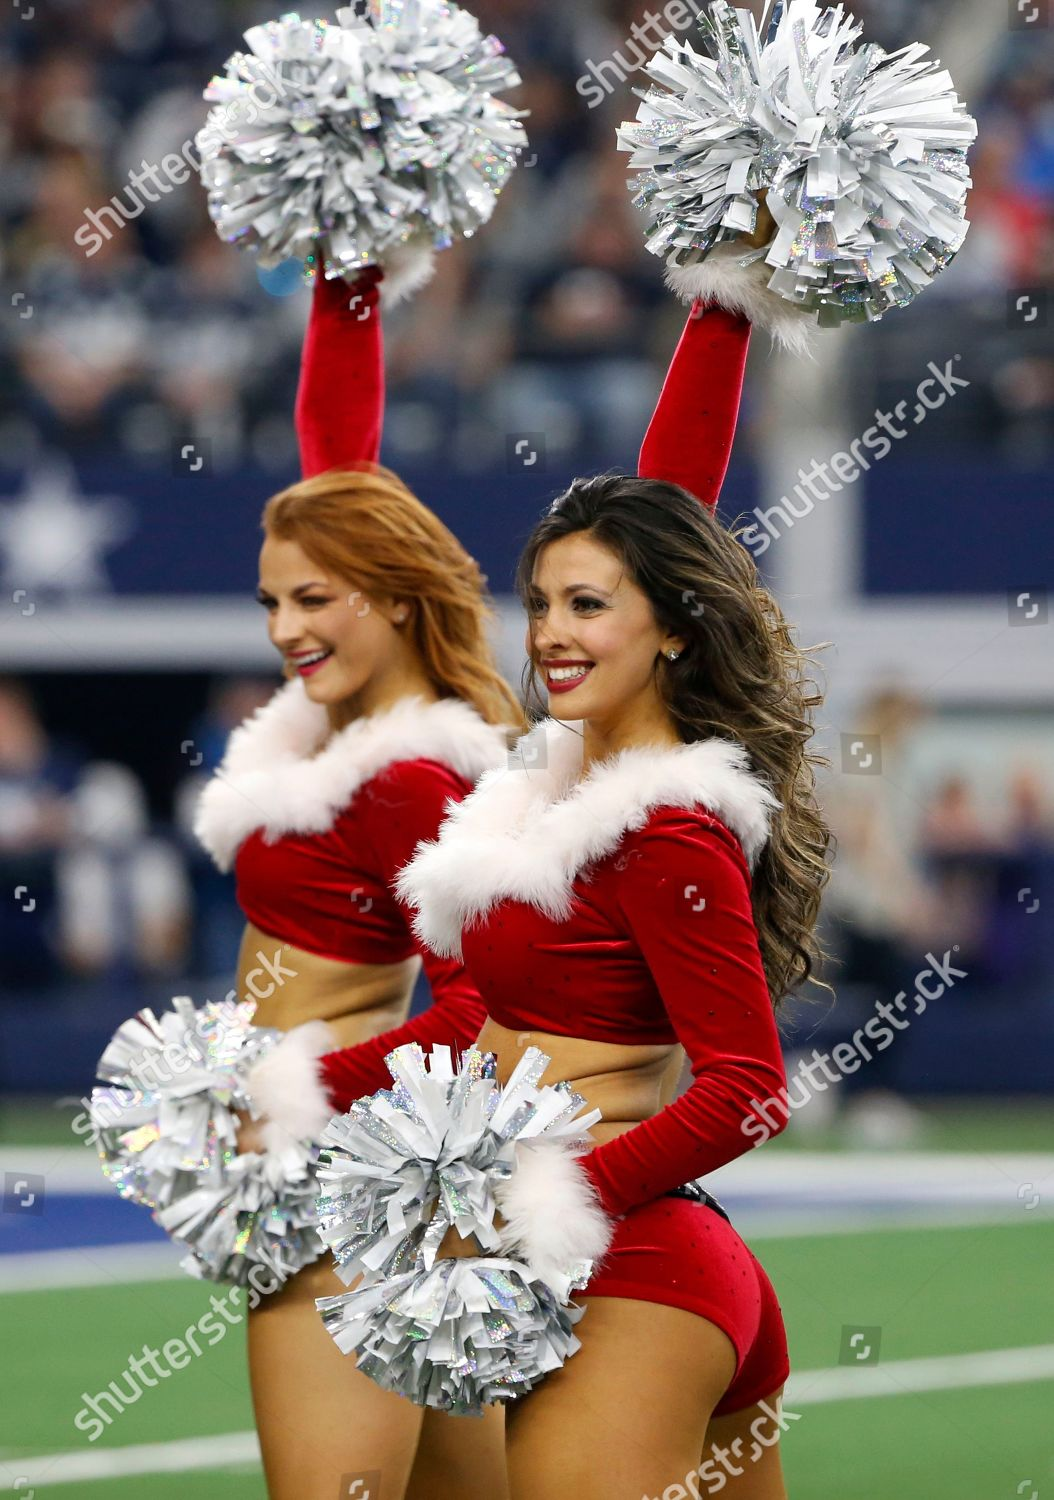 cfc6fc4bb Dallas Cowboys Cheerleaders wear holiday costume they Stock Photo ...